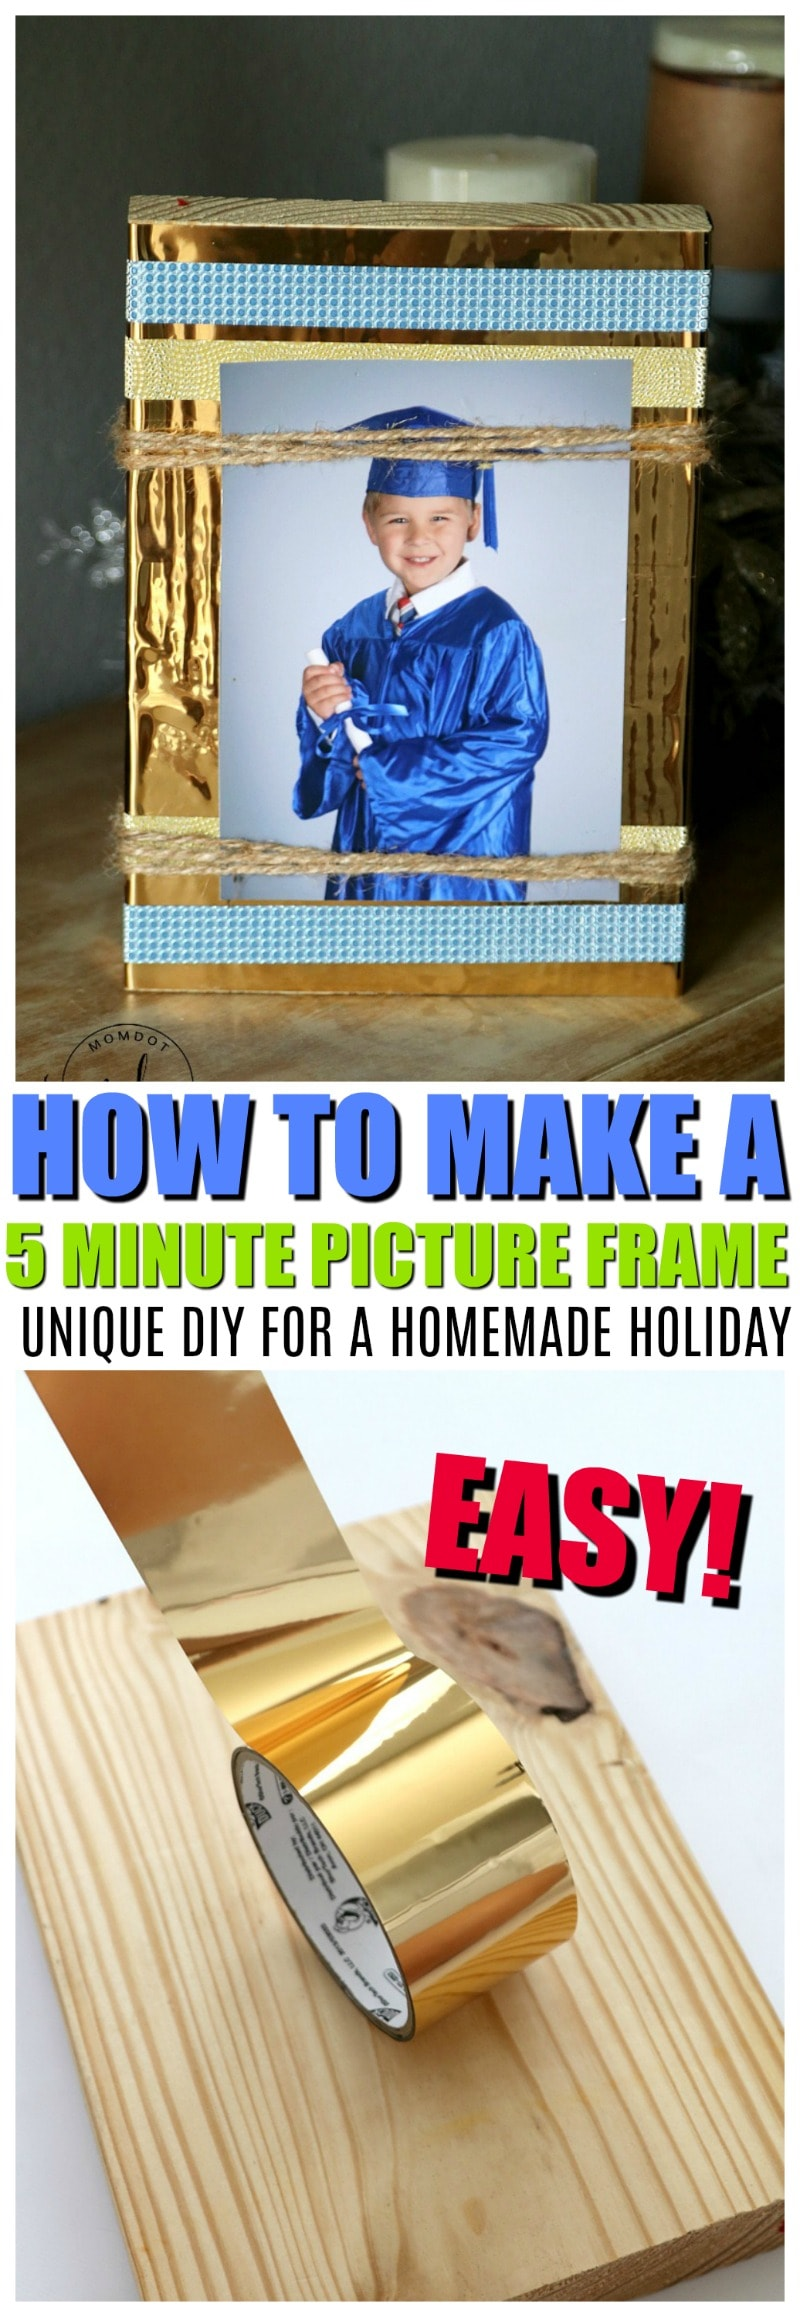 Homemade Picture Frame | How to make a Picture Frame with no glass, no saw - easy self standing picture frame DIY | Makes a perfect Homemade Gift that is child friendly, Block of Wood, Duck Tape Tutorial